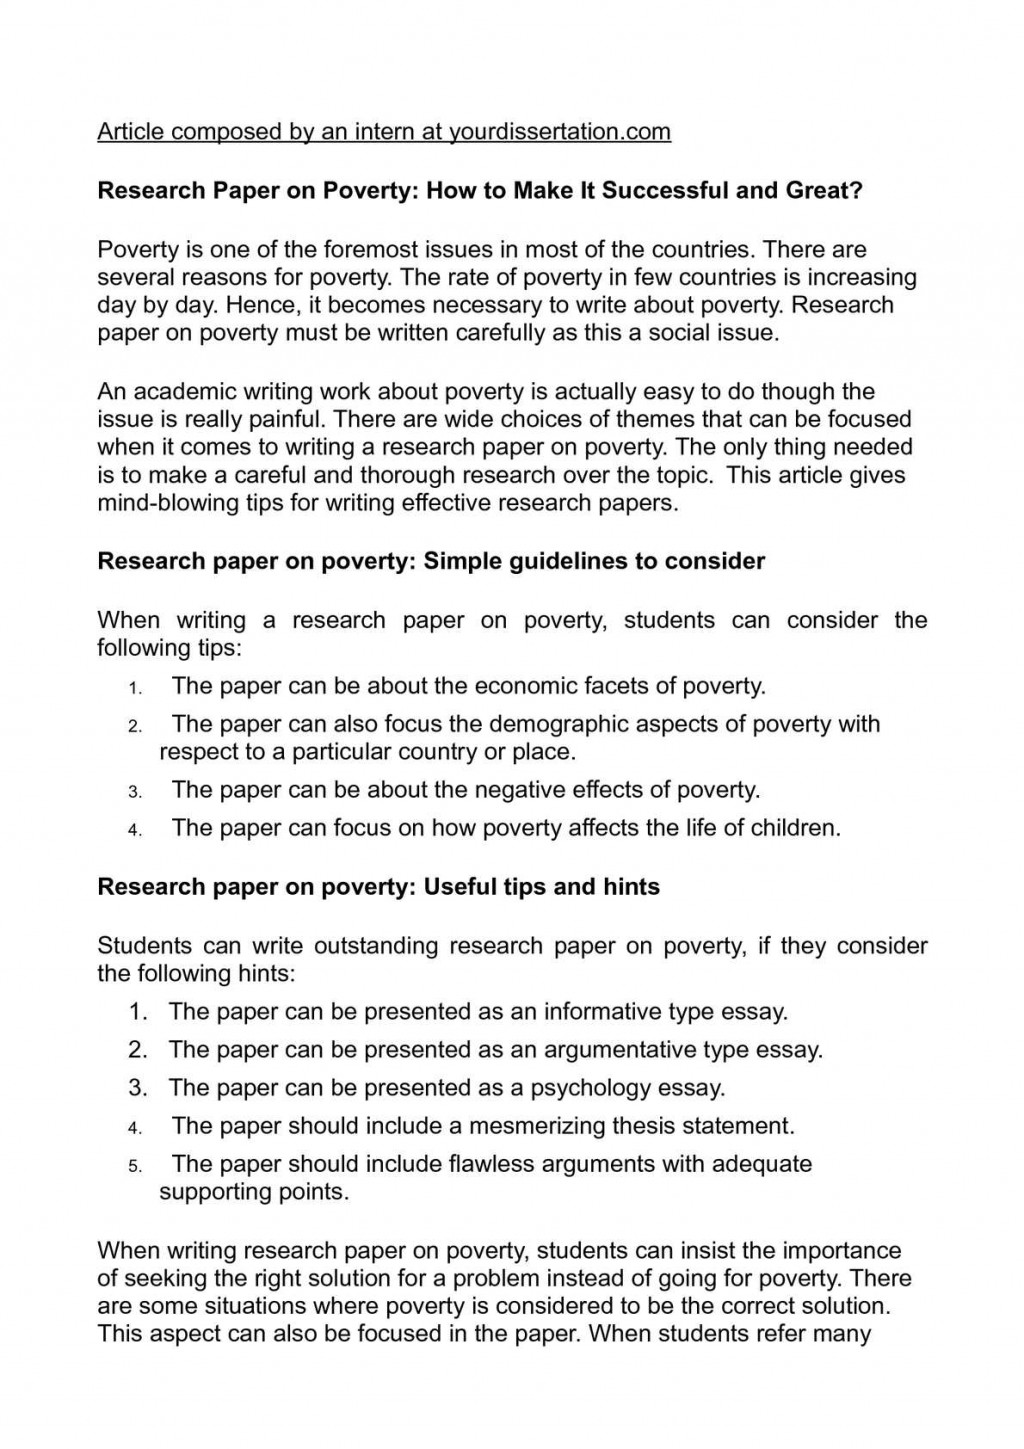 006 Can I Write Research Paper In One Day Fascinating A 6 Page How To Good Large